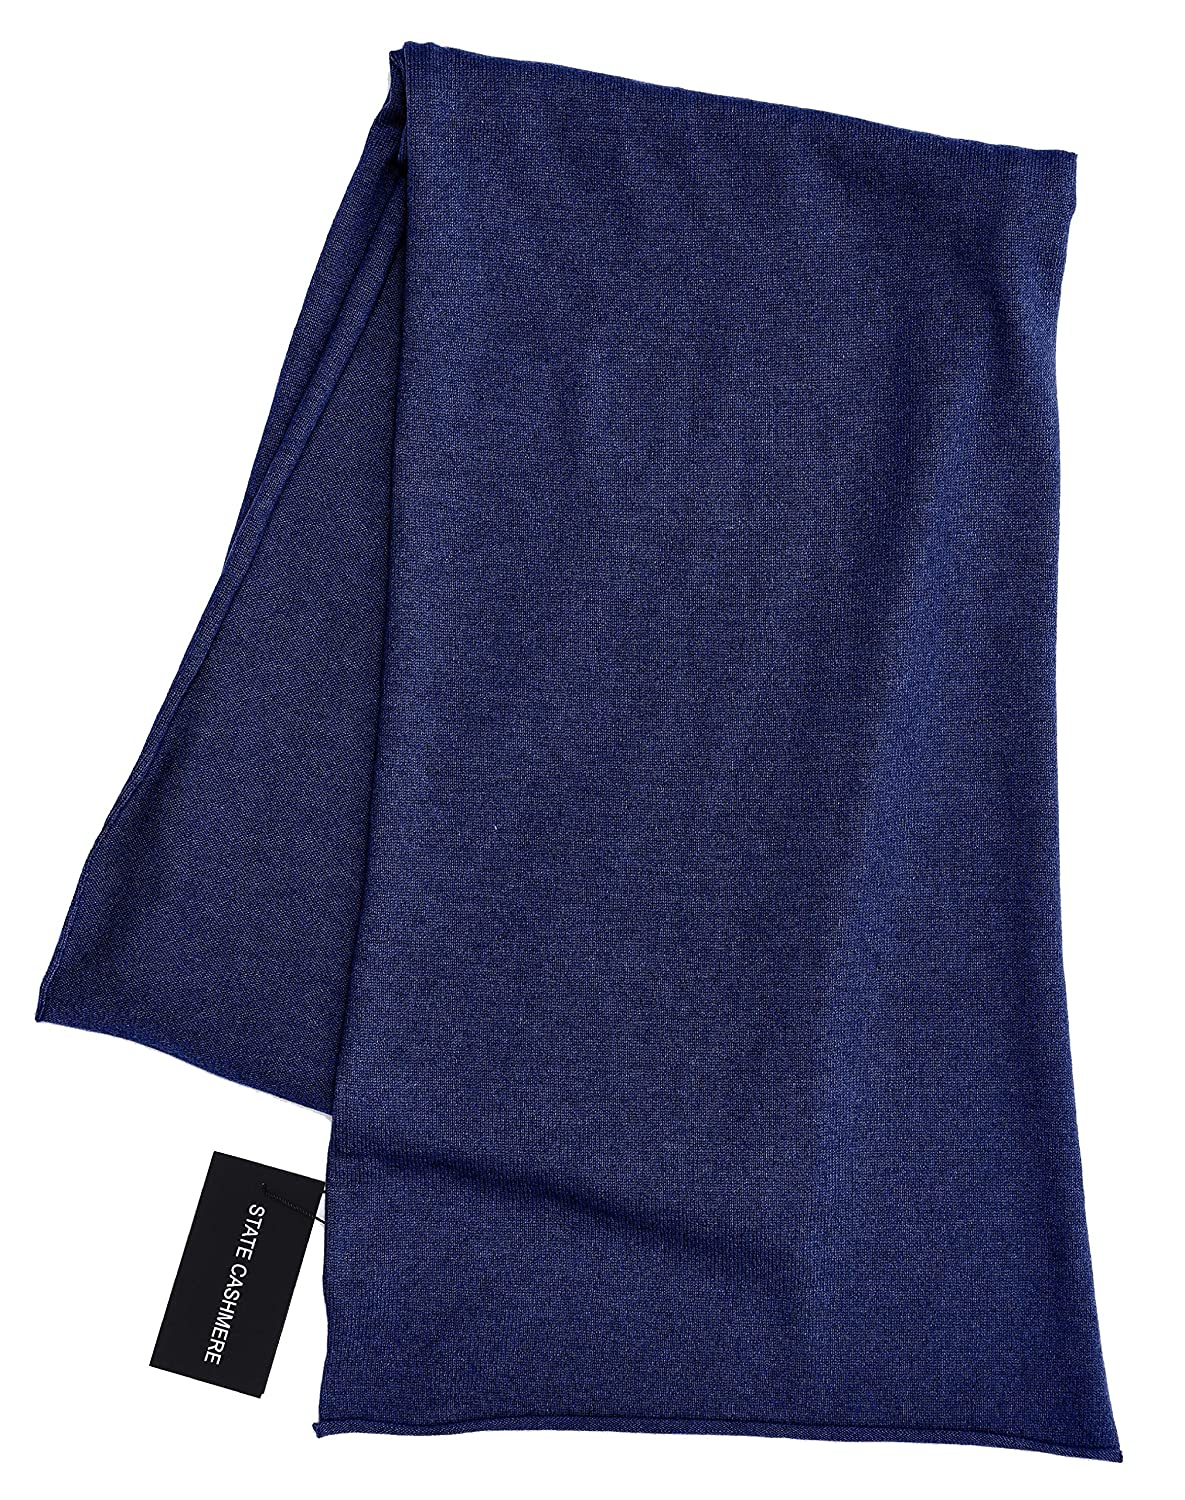 State Cashmere 100% Cashmere Solid Color Scarf Wrap, Soft and Cozy 80x13.5